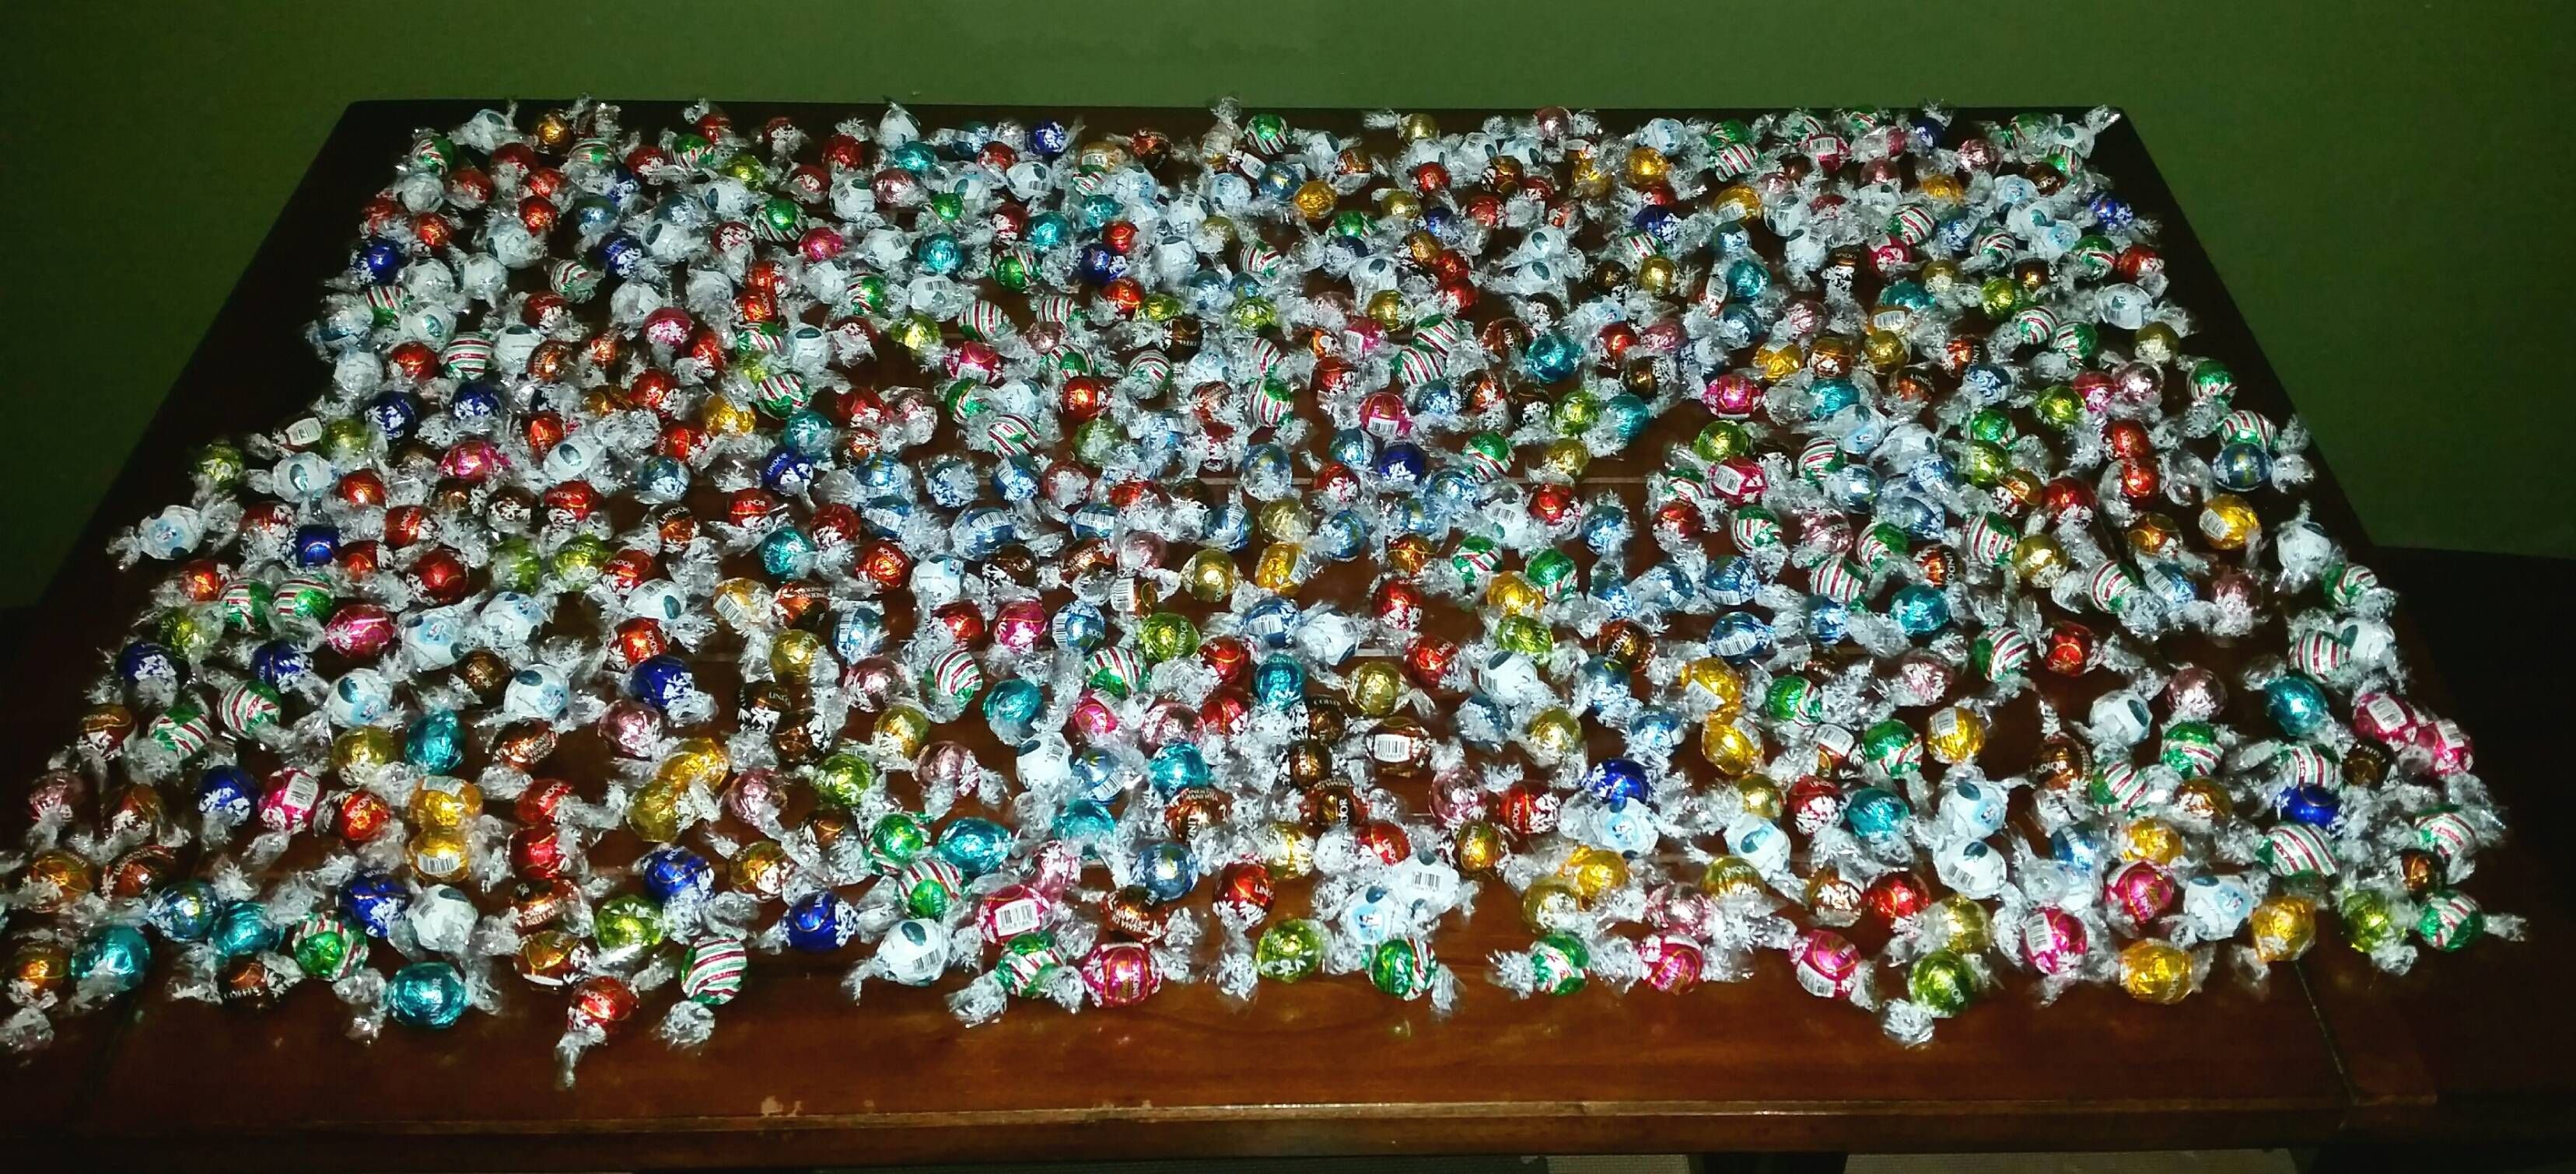 """When you're in the doghouse and the wife jokingly says """"the only thing that'll get you out this time is 500 lindor truffles""""malgoya - http://asianpin.com/when-youre-in-the-doghouse-and-the-wife-jokingly-says-the-only-thing-thatll-get-you-out-this-time-is-500-lindor-trufflesmalgoya/"""